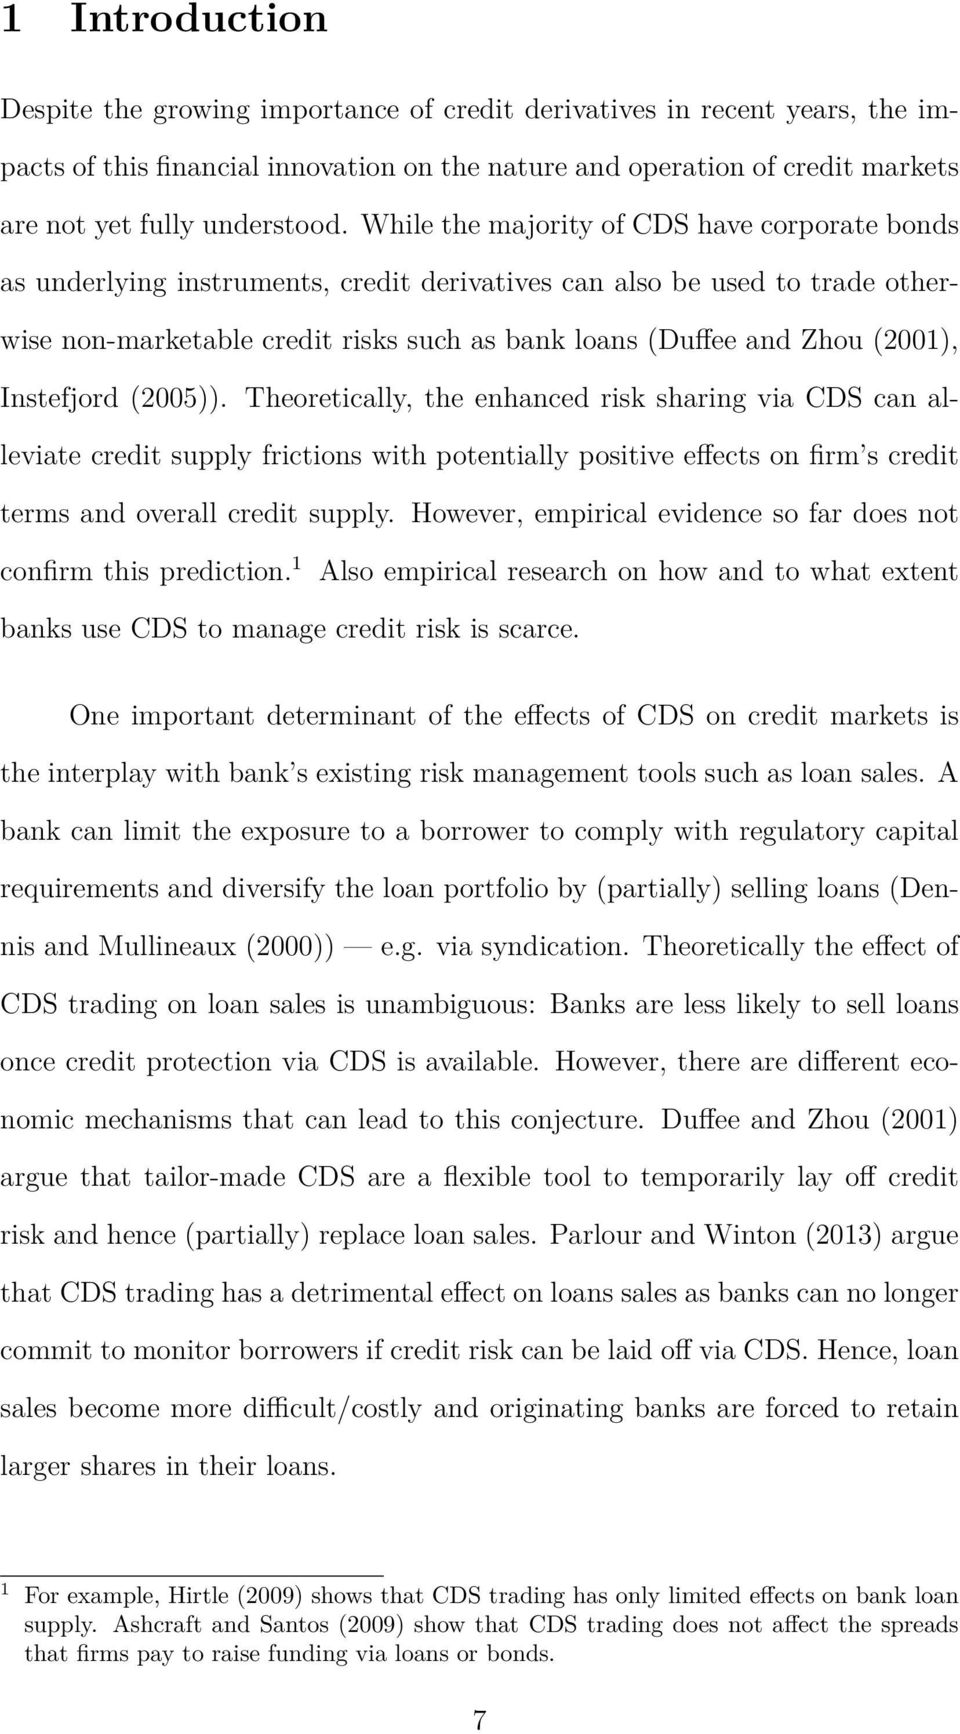 While the majority of CDS have corporate bonds as underlying instruments, credit derivatives can also be used to trade otherwise non-marketable credit risks such as bank loans (Duffee and Zhou